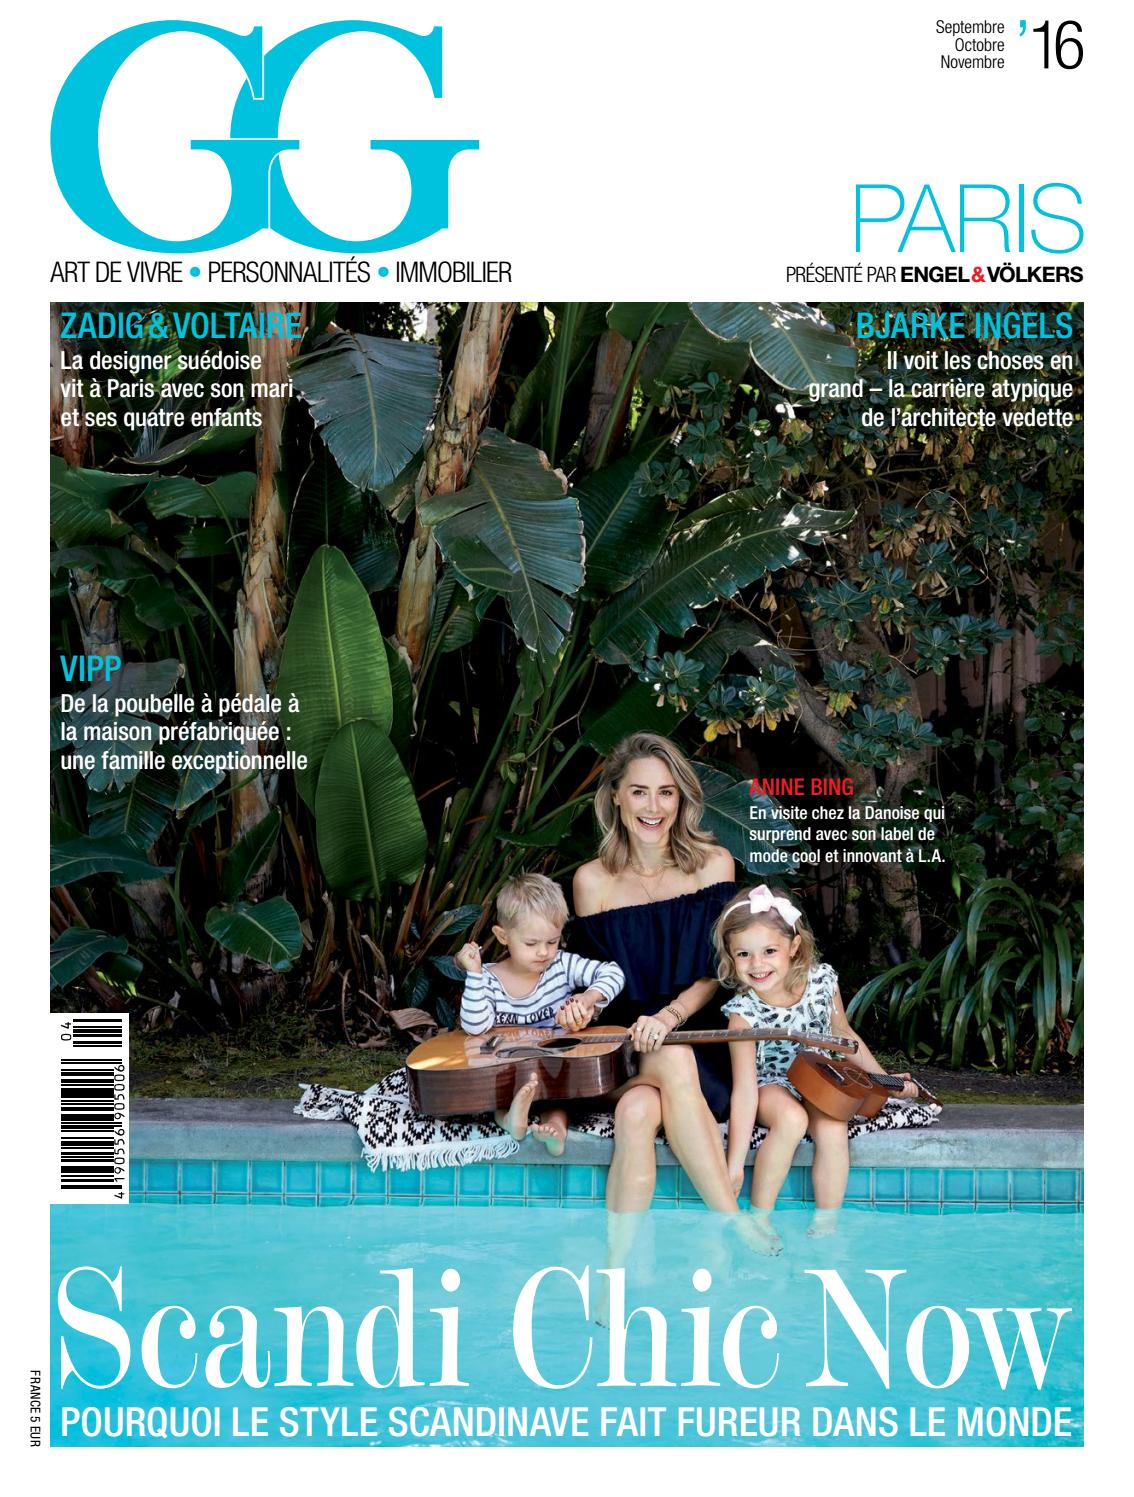 Cartable En Ligne Jean Wiener : cartable, ligne, wiener, Magazine, 04/16, Paris, GG-Magazine, Issuu